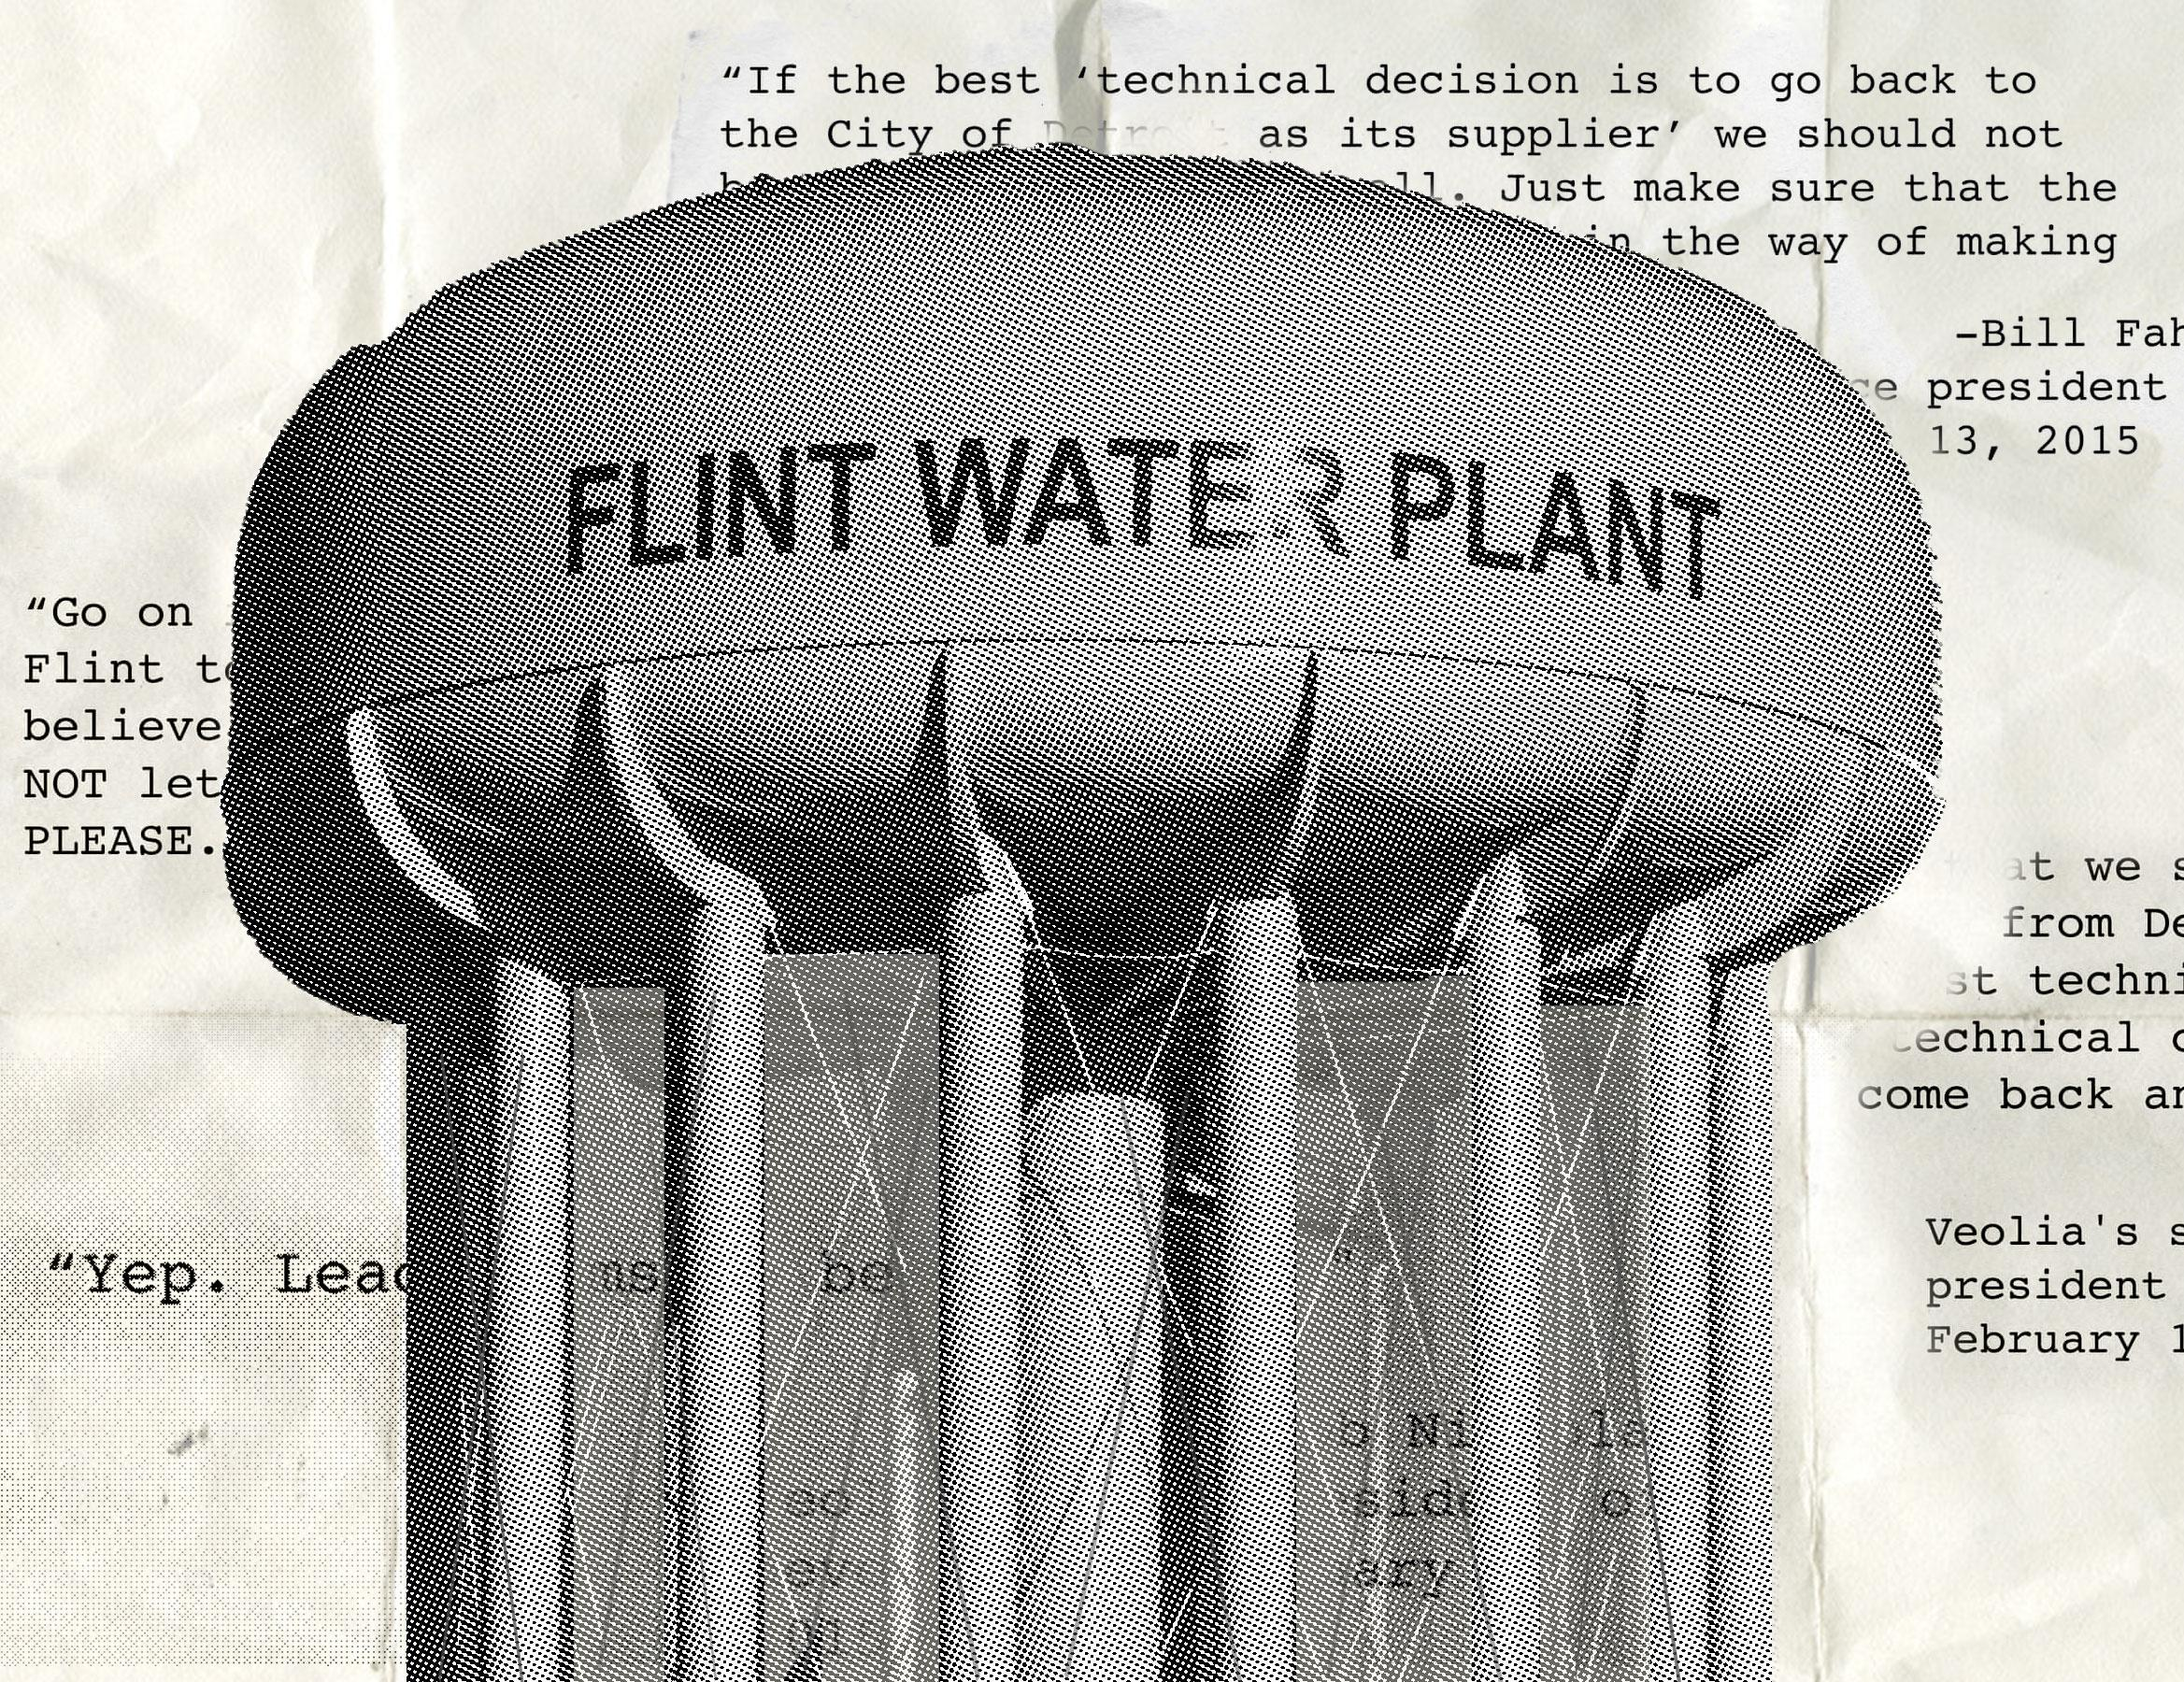 Revealed: water company and city officials knew about Flint poison risk